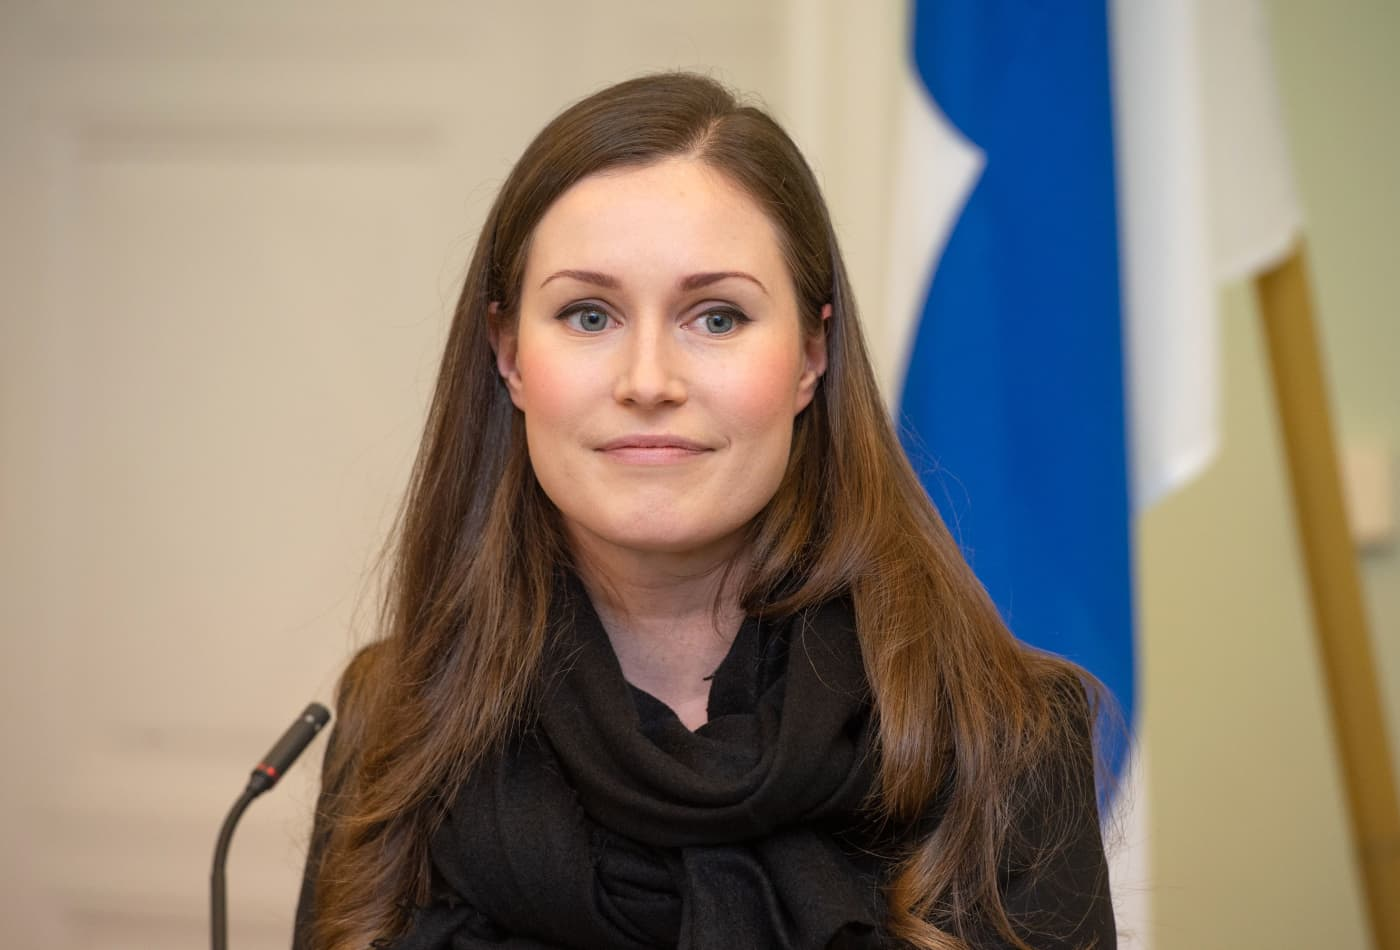 Nordic countries are better at achieving the American Dream, Finland PM Sanna Marin says